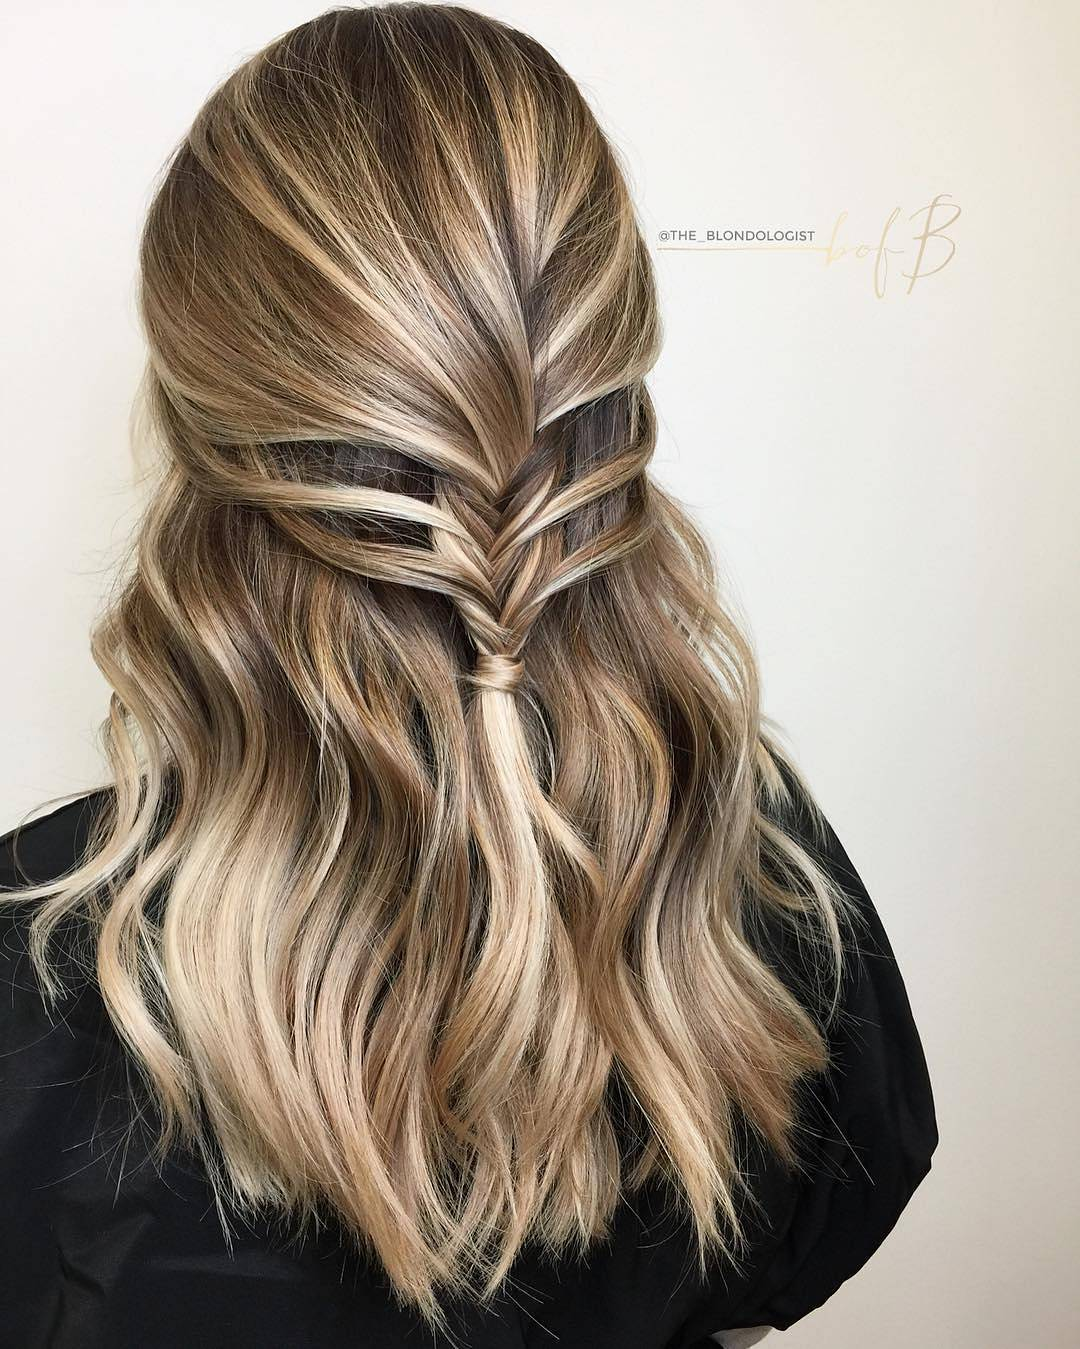 20 Dirty Blonde Hair Ideas That Work On Everyone: 20 Beautiful Blonde Balayage Hair Color Ideas